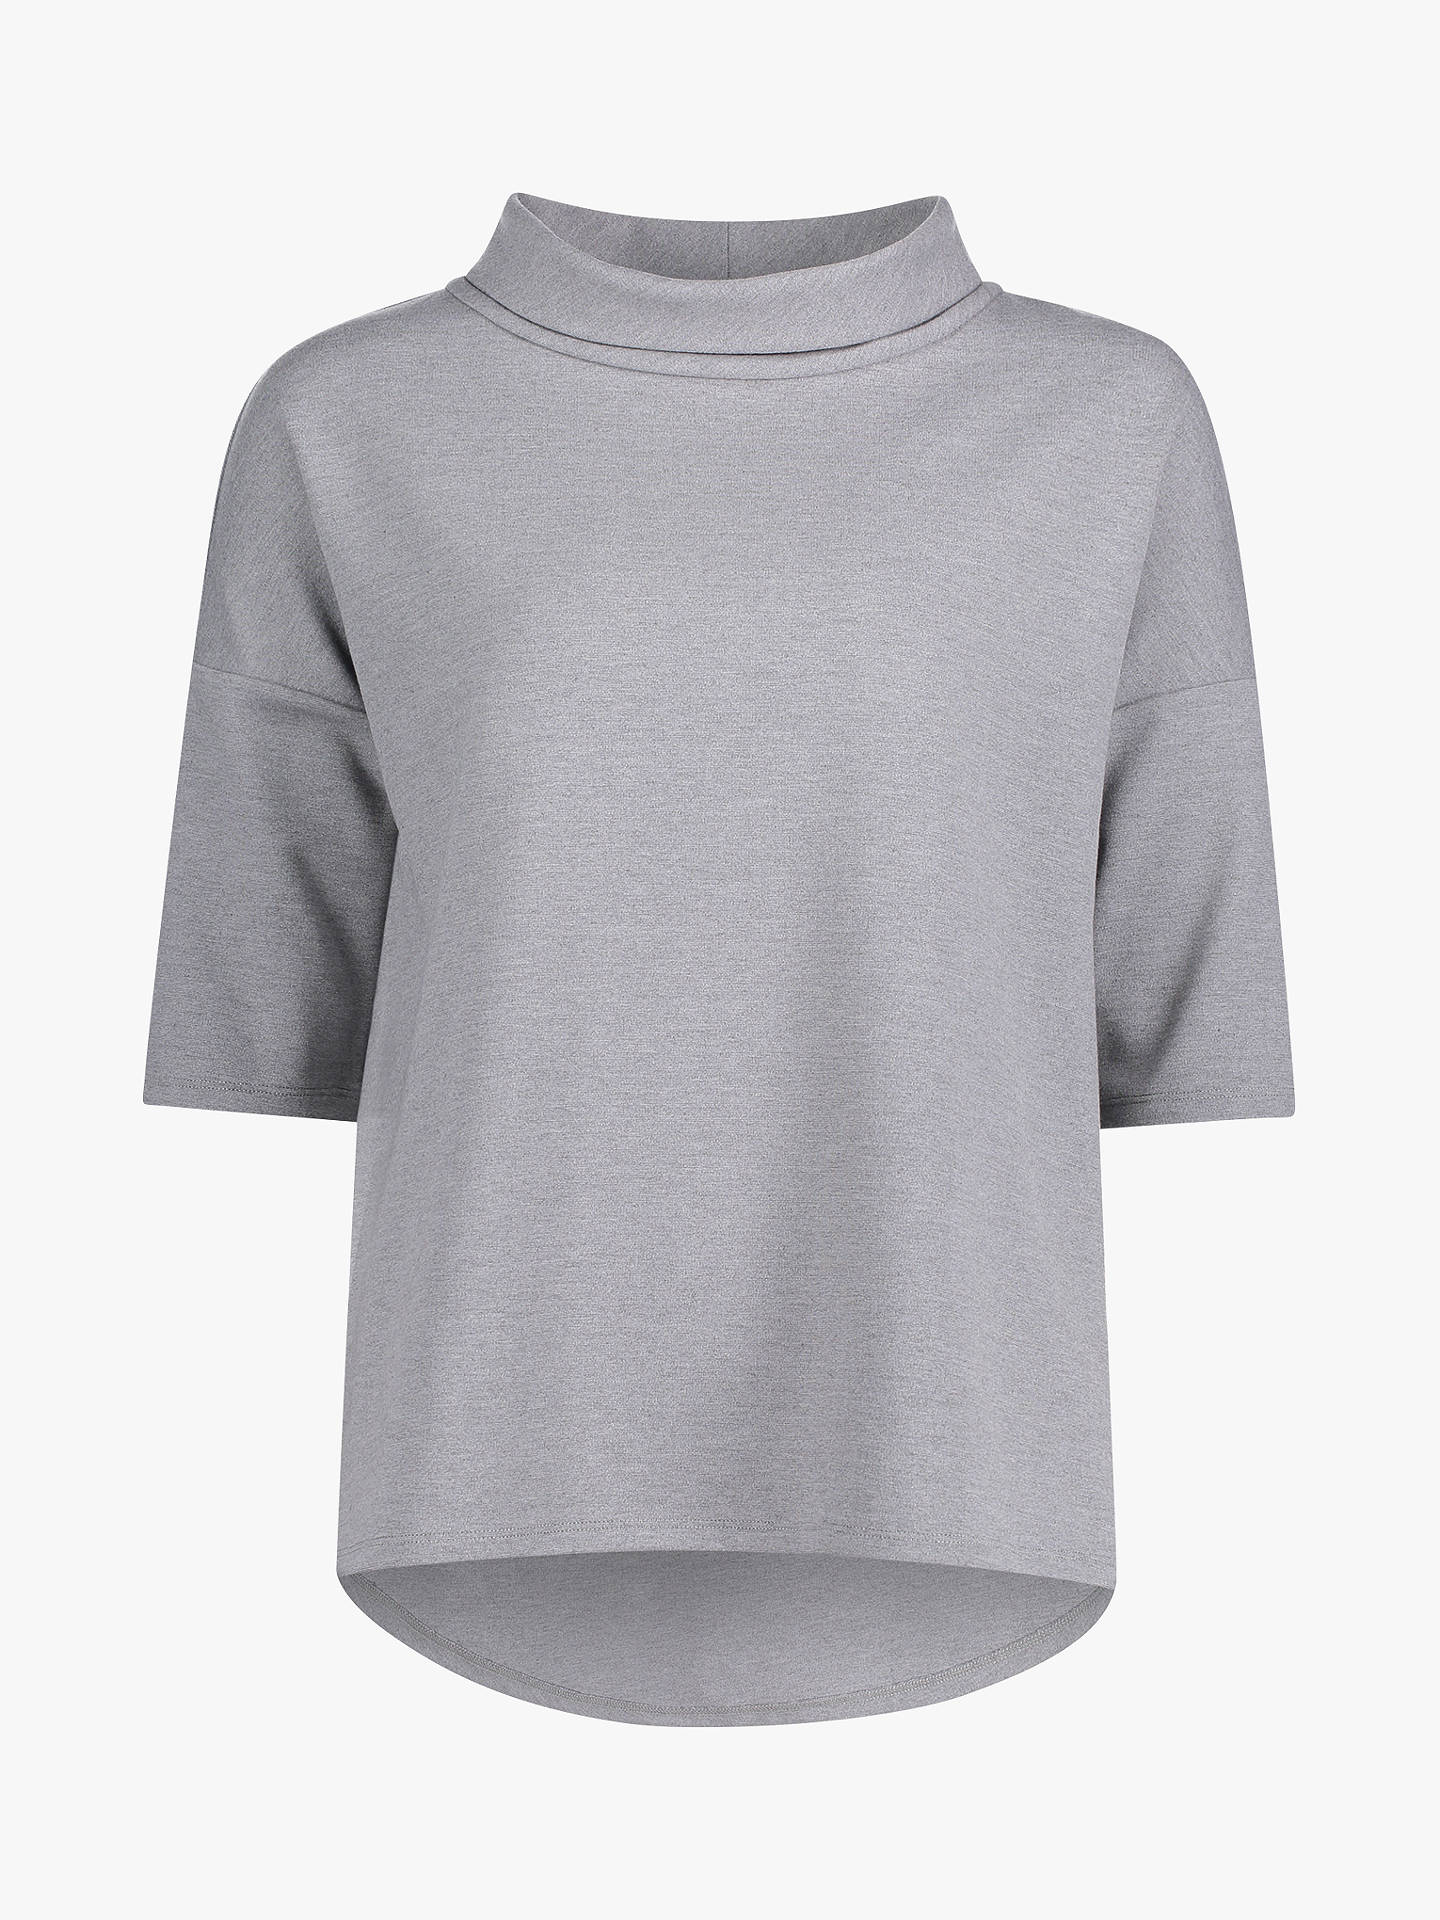 Buy Betty Barclay Cowl Neck Top, Grey Melange, 10 Online at johnlewis.com